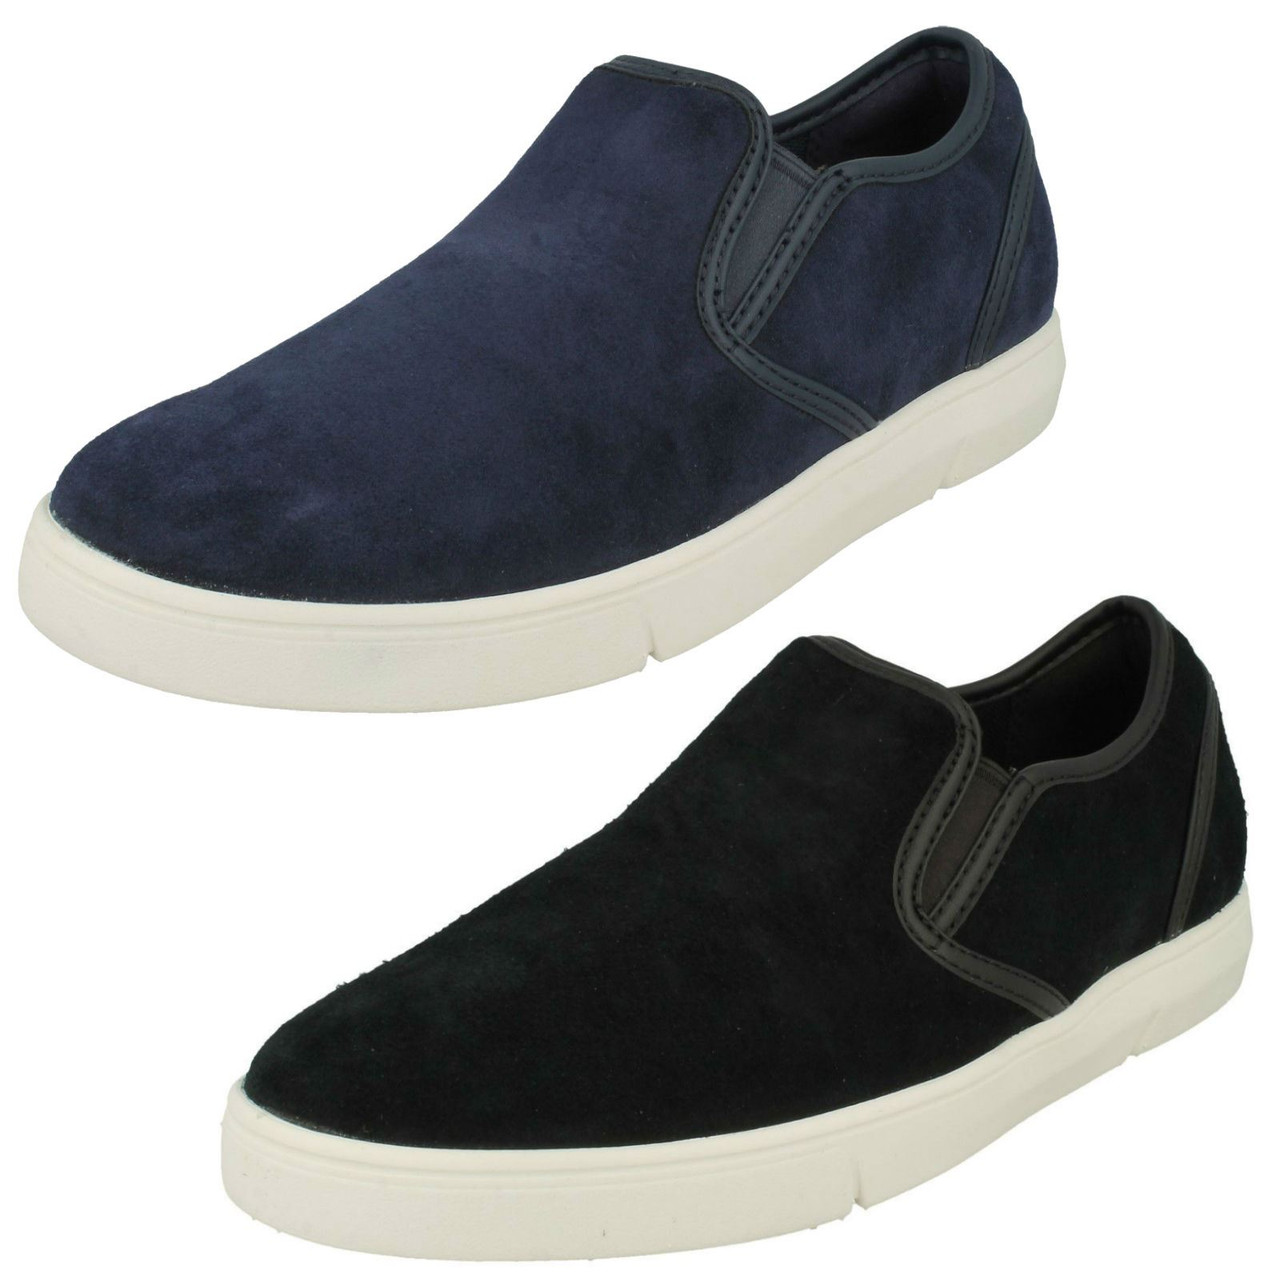 Mens Clarks Casual Slip On Shoes Landry